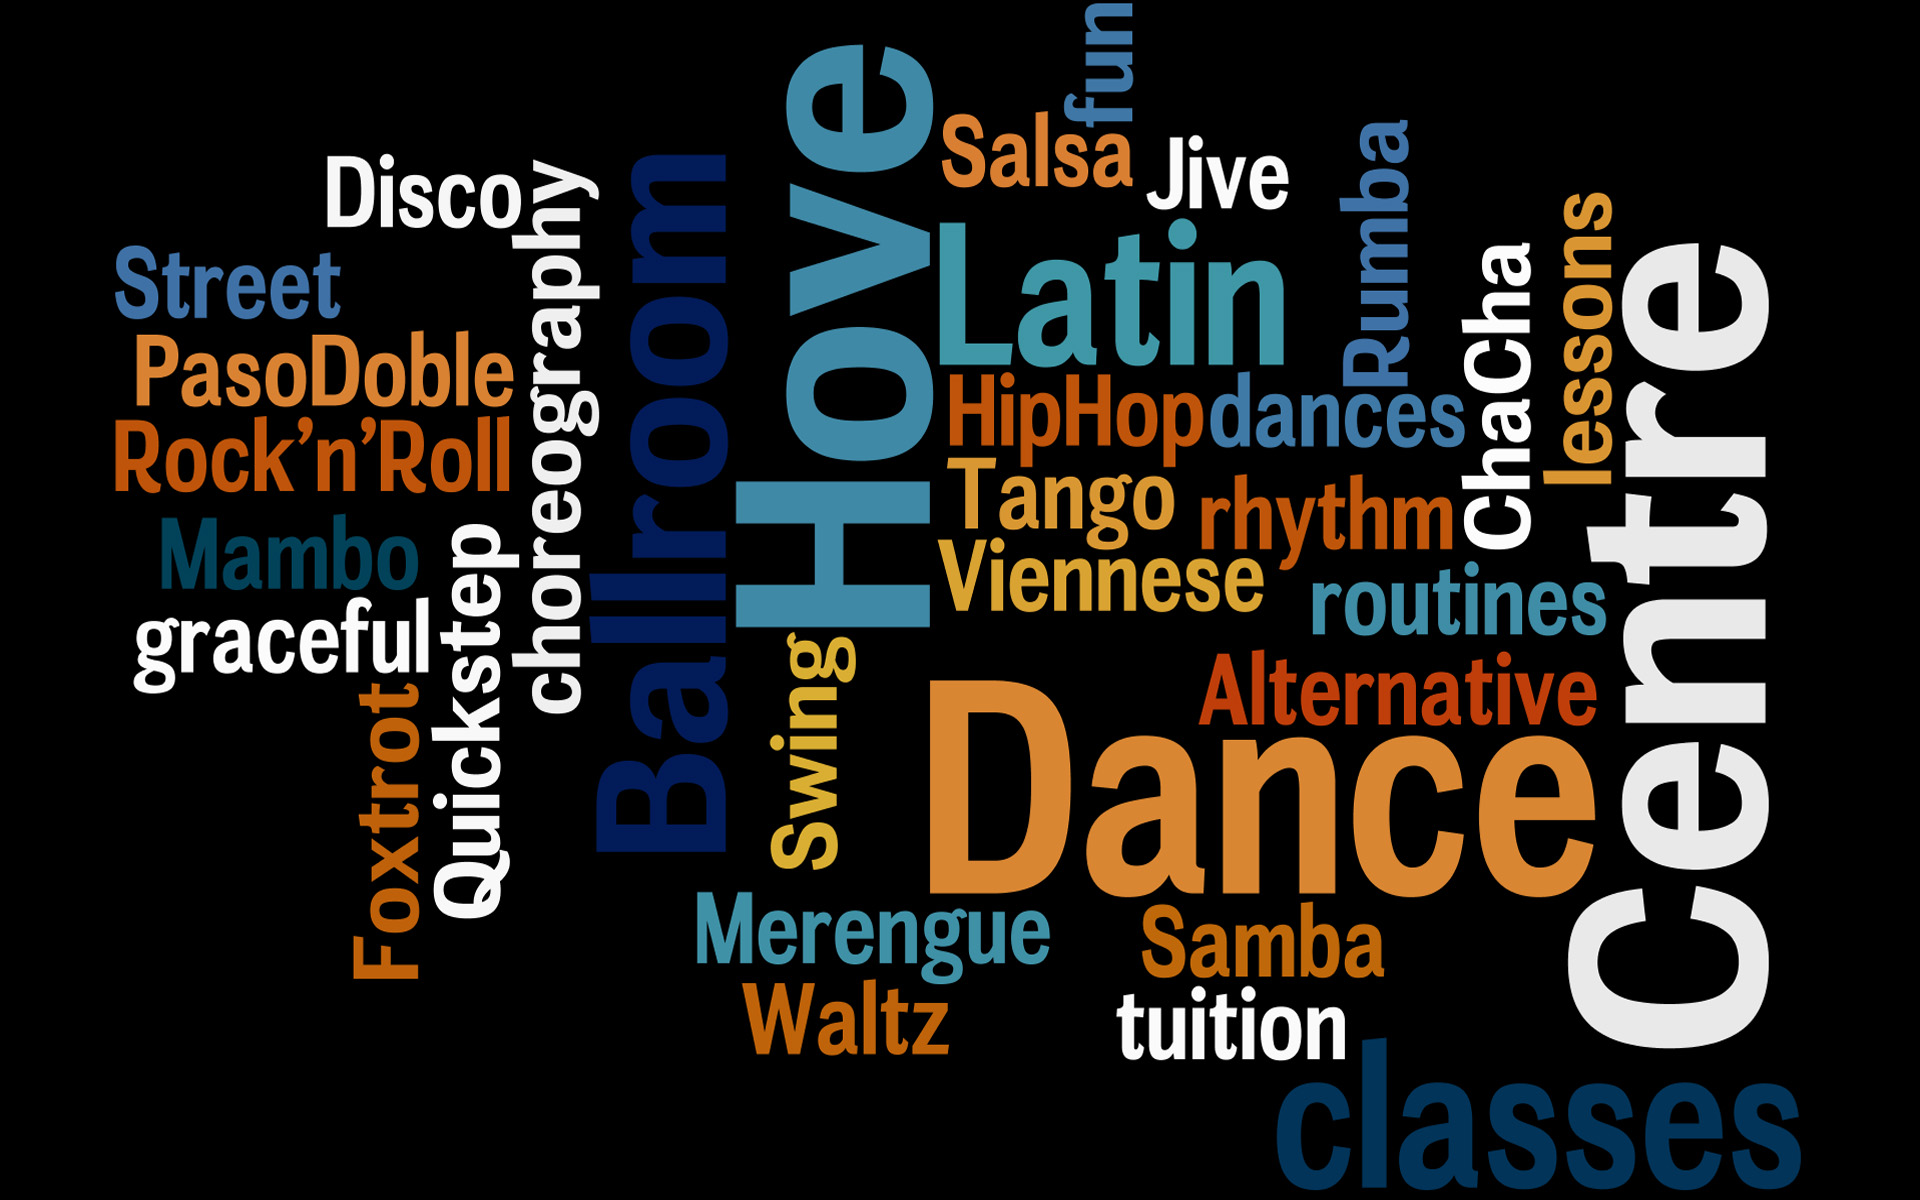 Free Download Hd Dance Wallpapers 1920x1200 For Your Desktop Mobile Tablet Explore 13 Dance Quotes Wallpapers Dance Quotes Wallpapers Dance Dance Revolution Wallpaper Dance Wallpapers